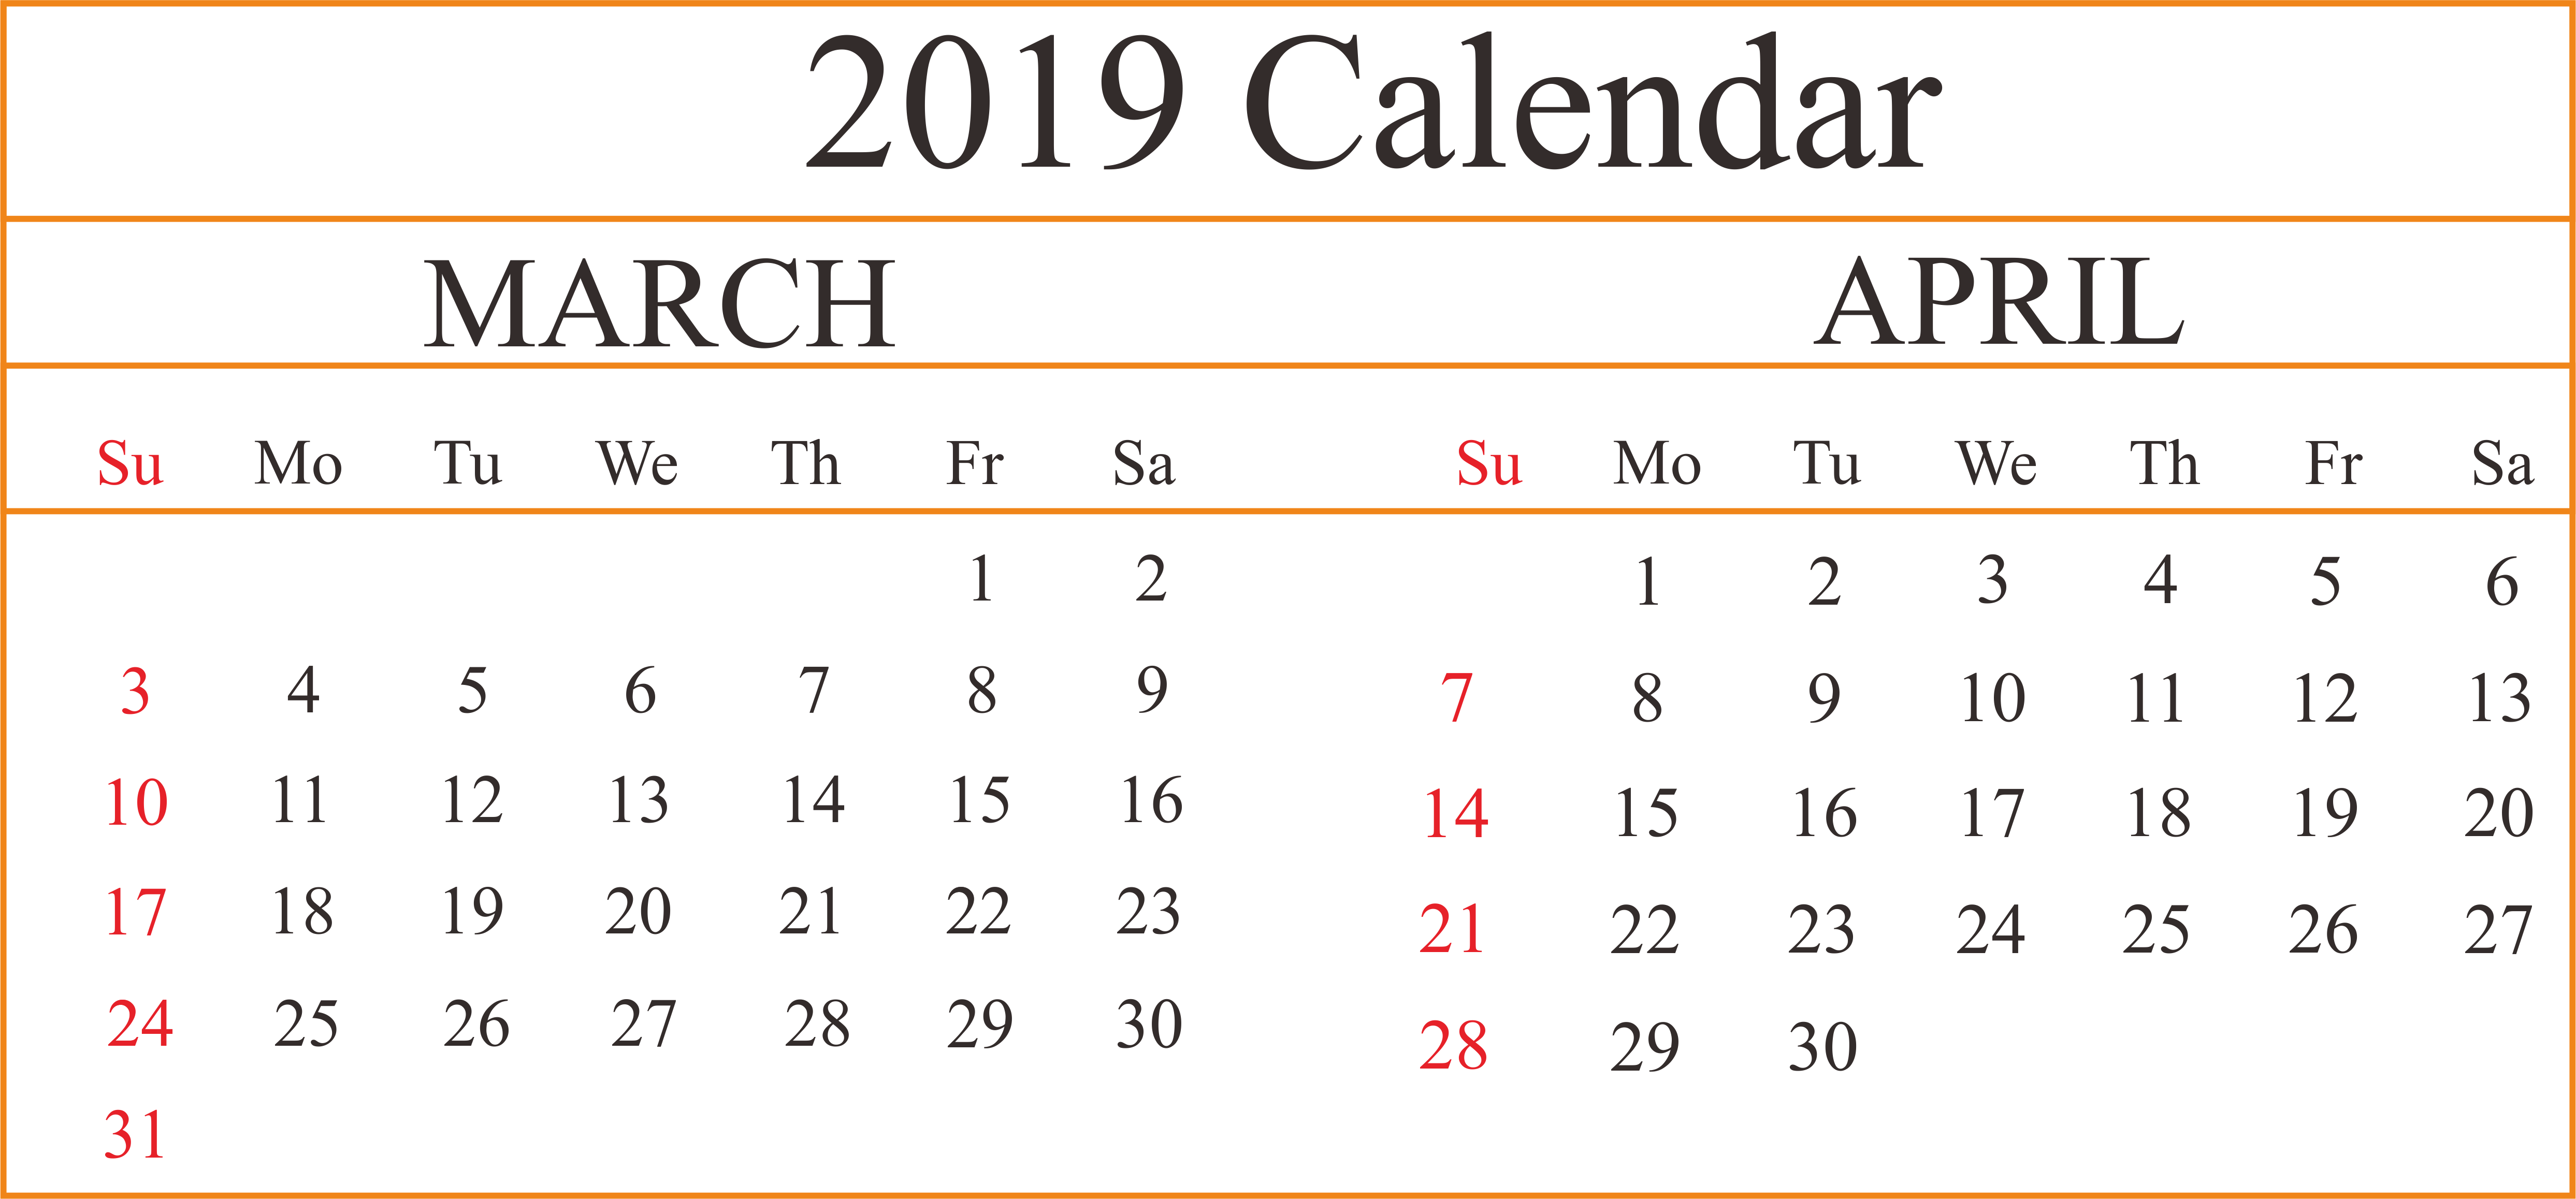 graphic relating to Printable 2 Month Calendar called 2 Thirty day period March April Printable Blank Calendar #MarchCalendar